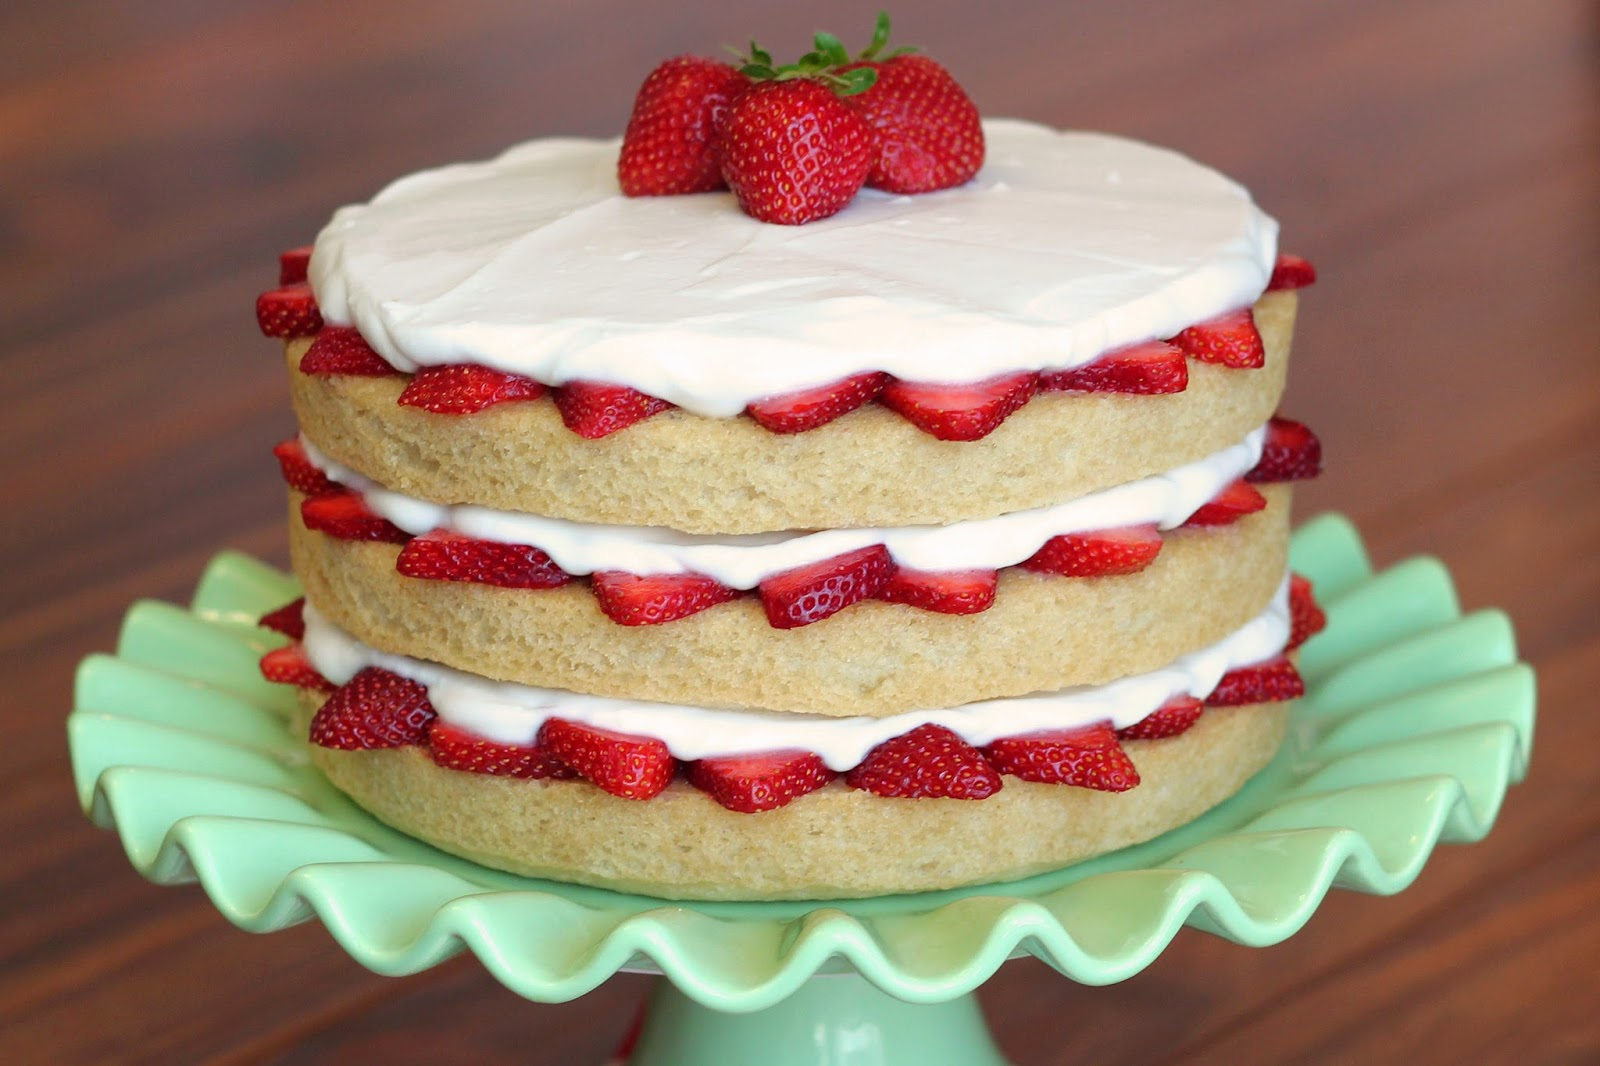 Gluten Free Vegan Strawberry Shortcake Sarah Baking